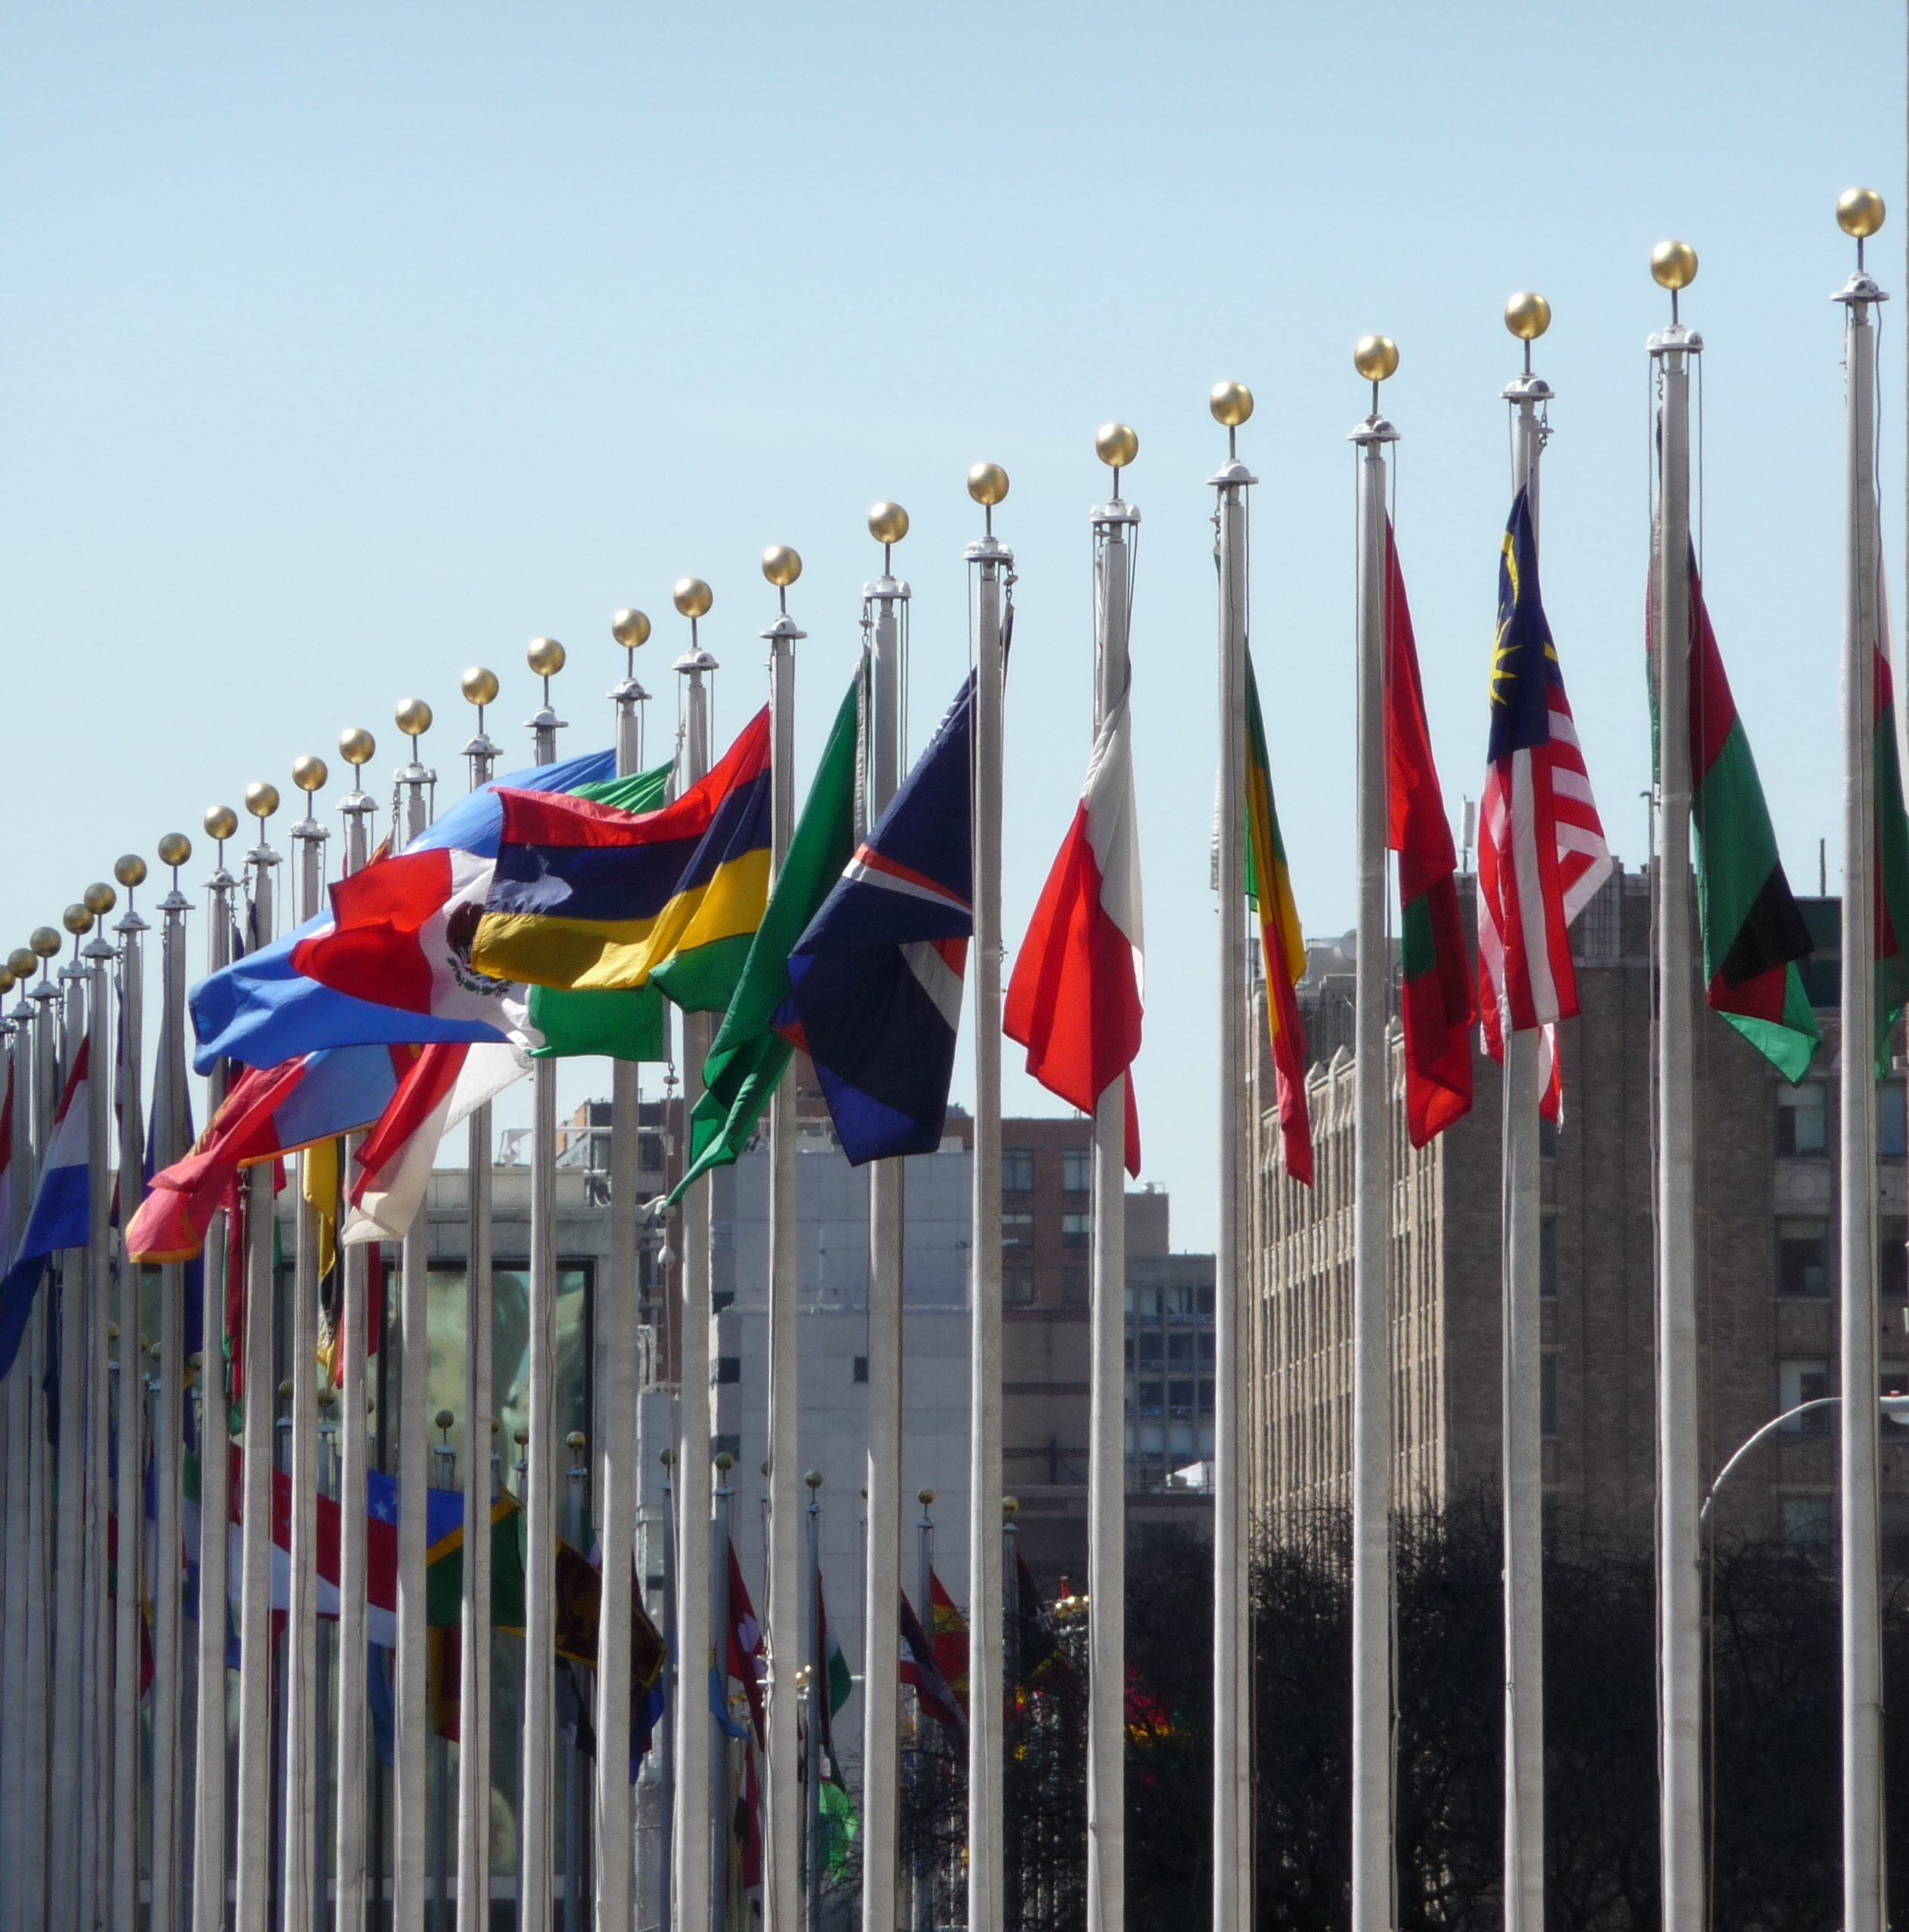 Photo of flags in a line.